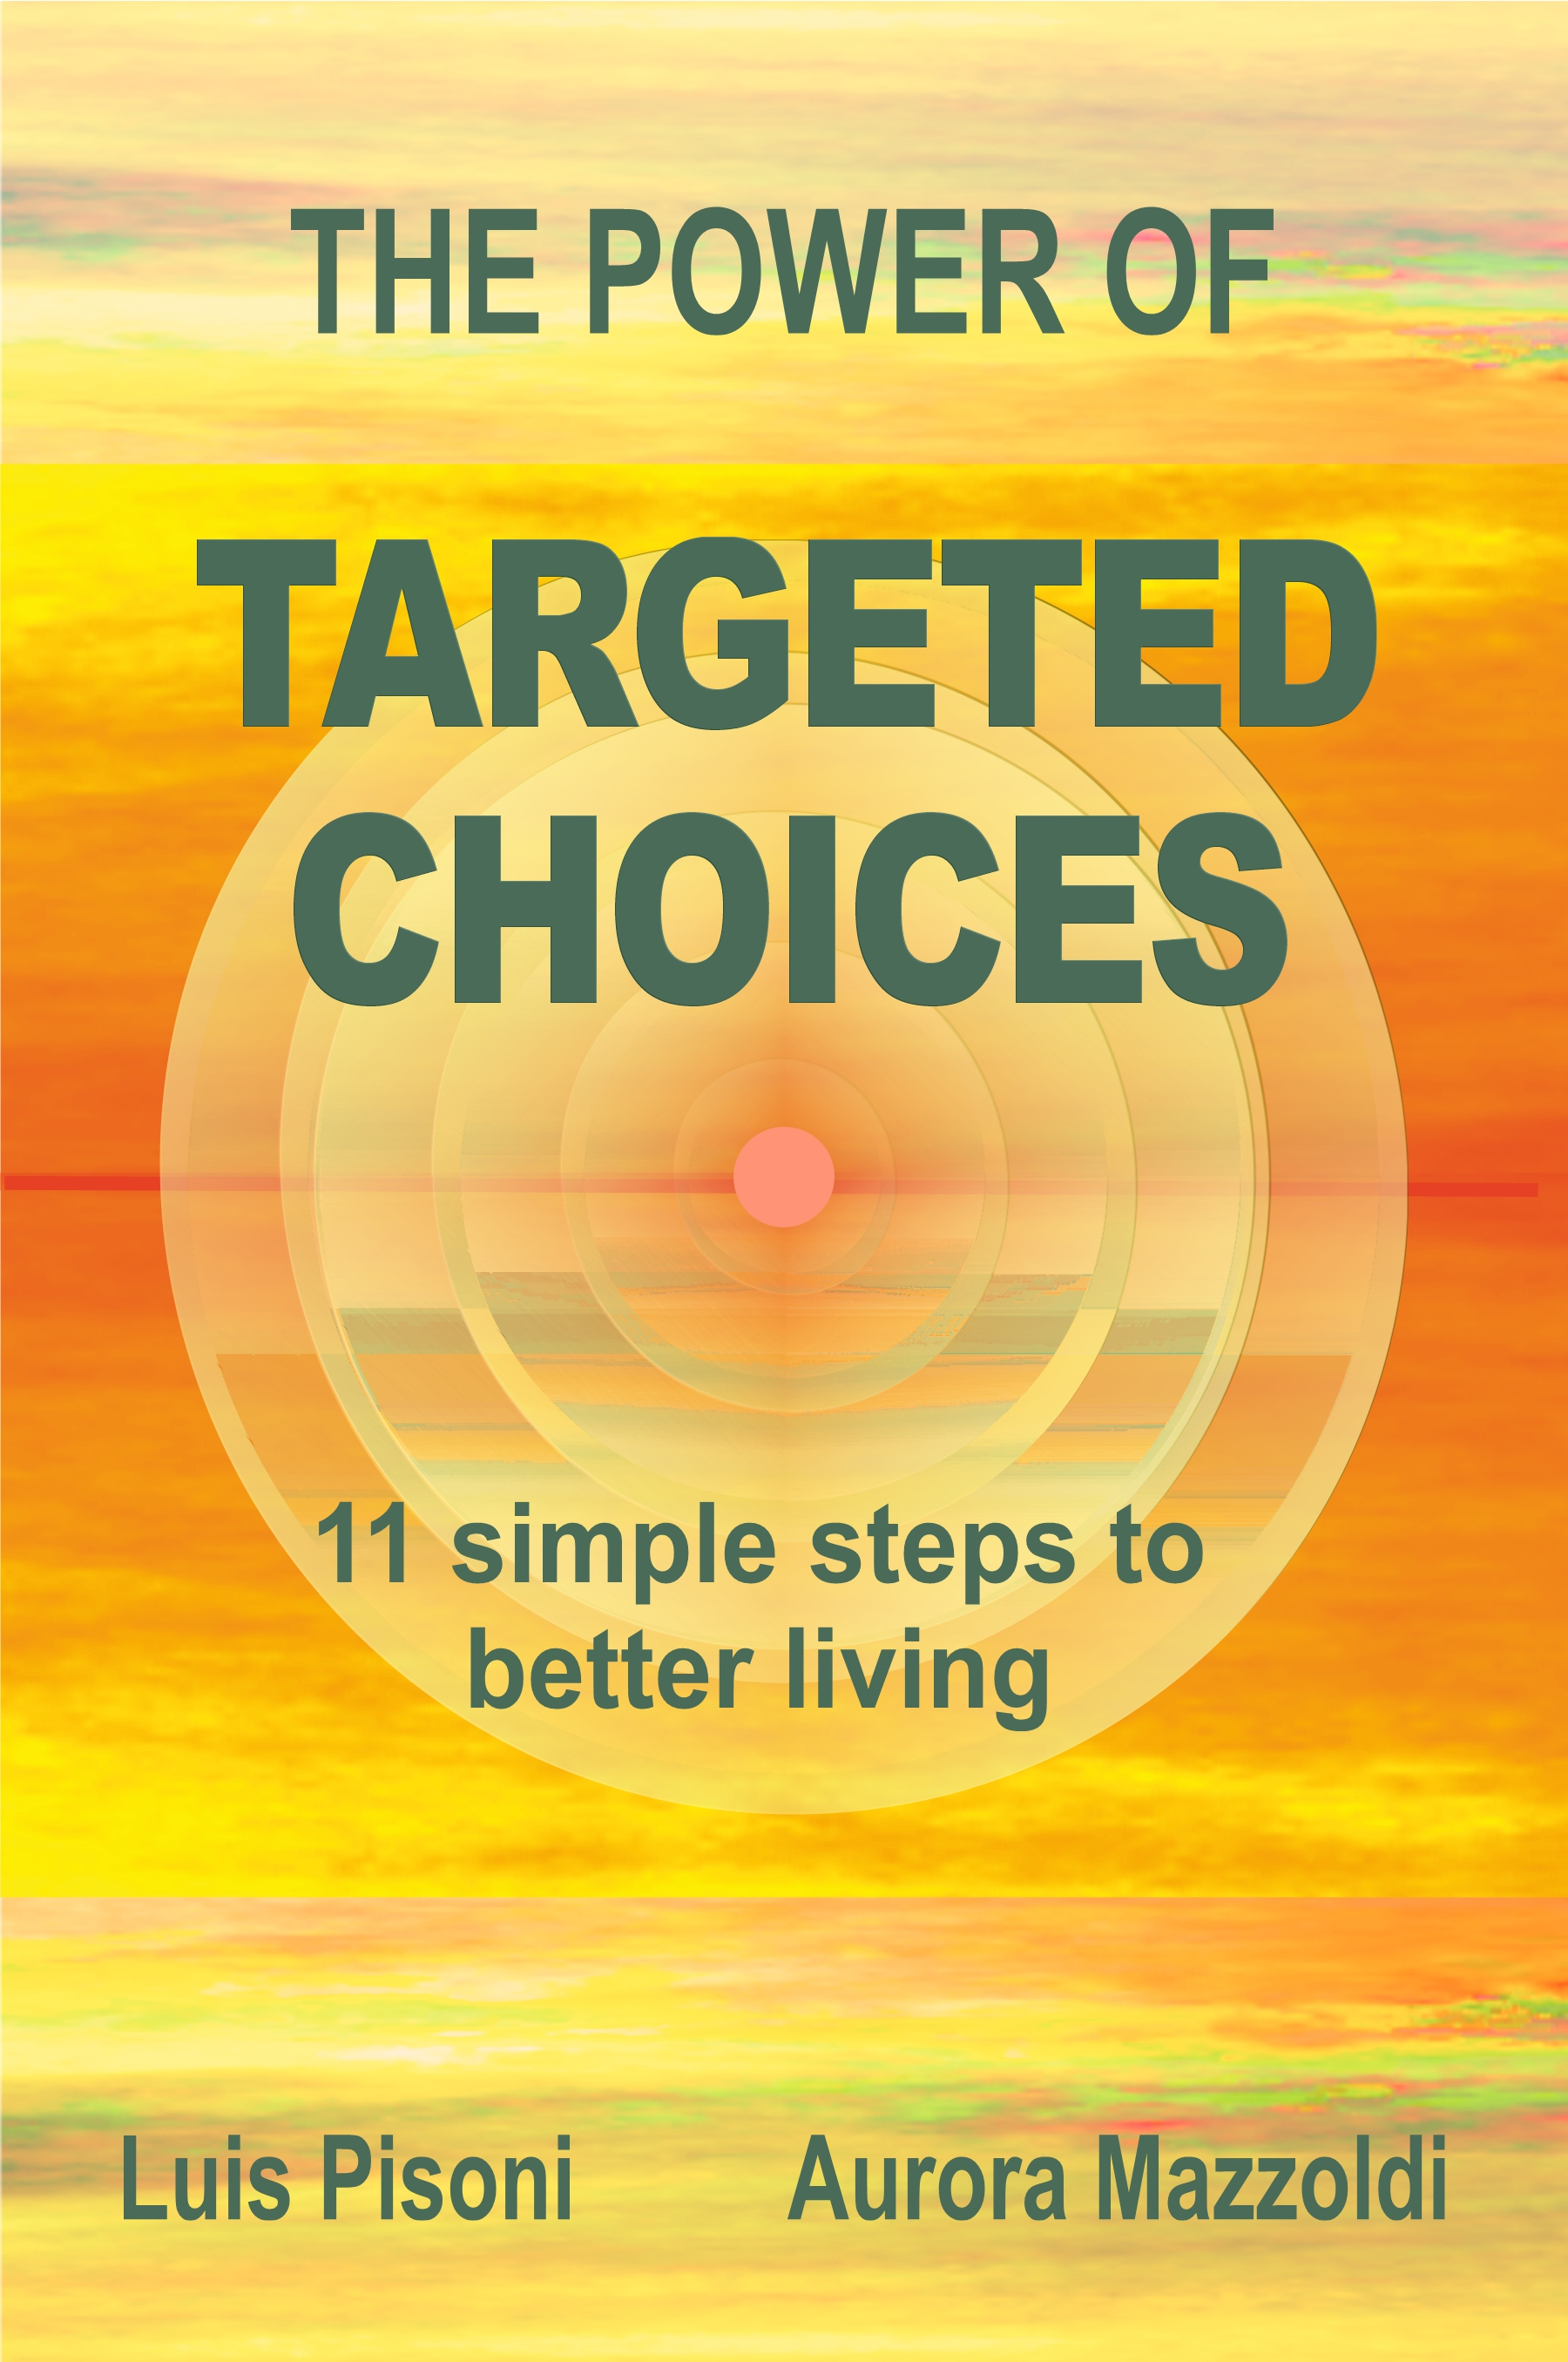 THE POWER OF TARGETED CHOICES